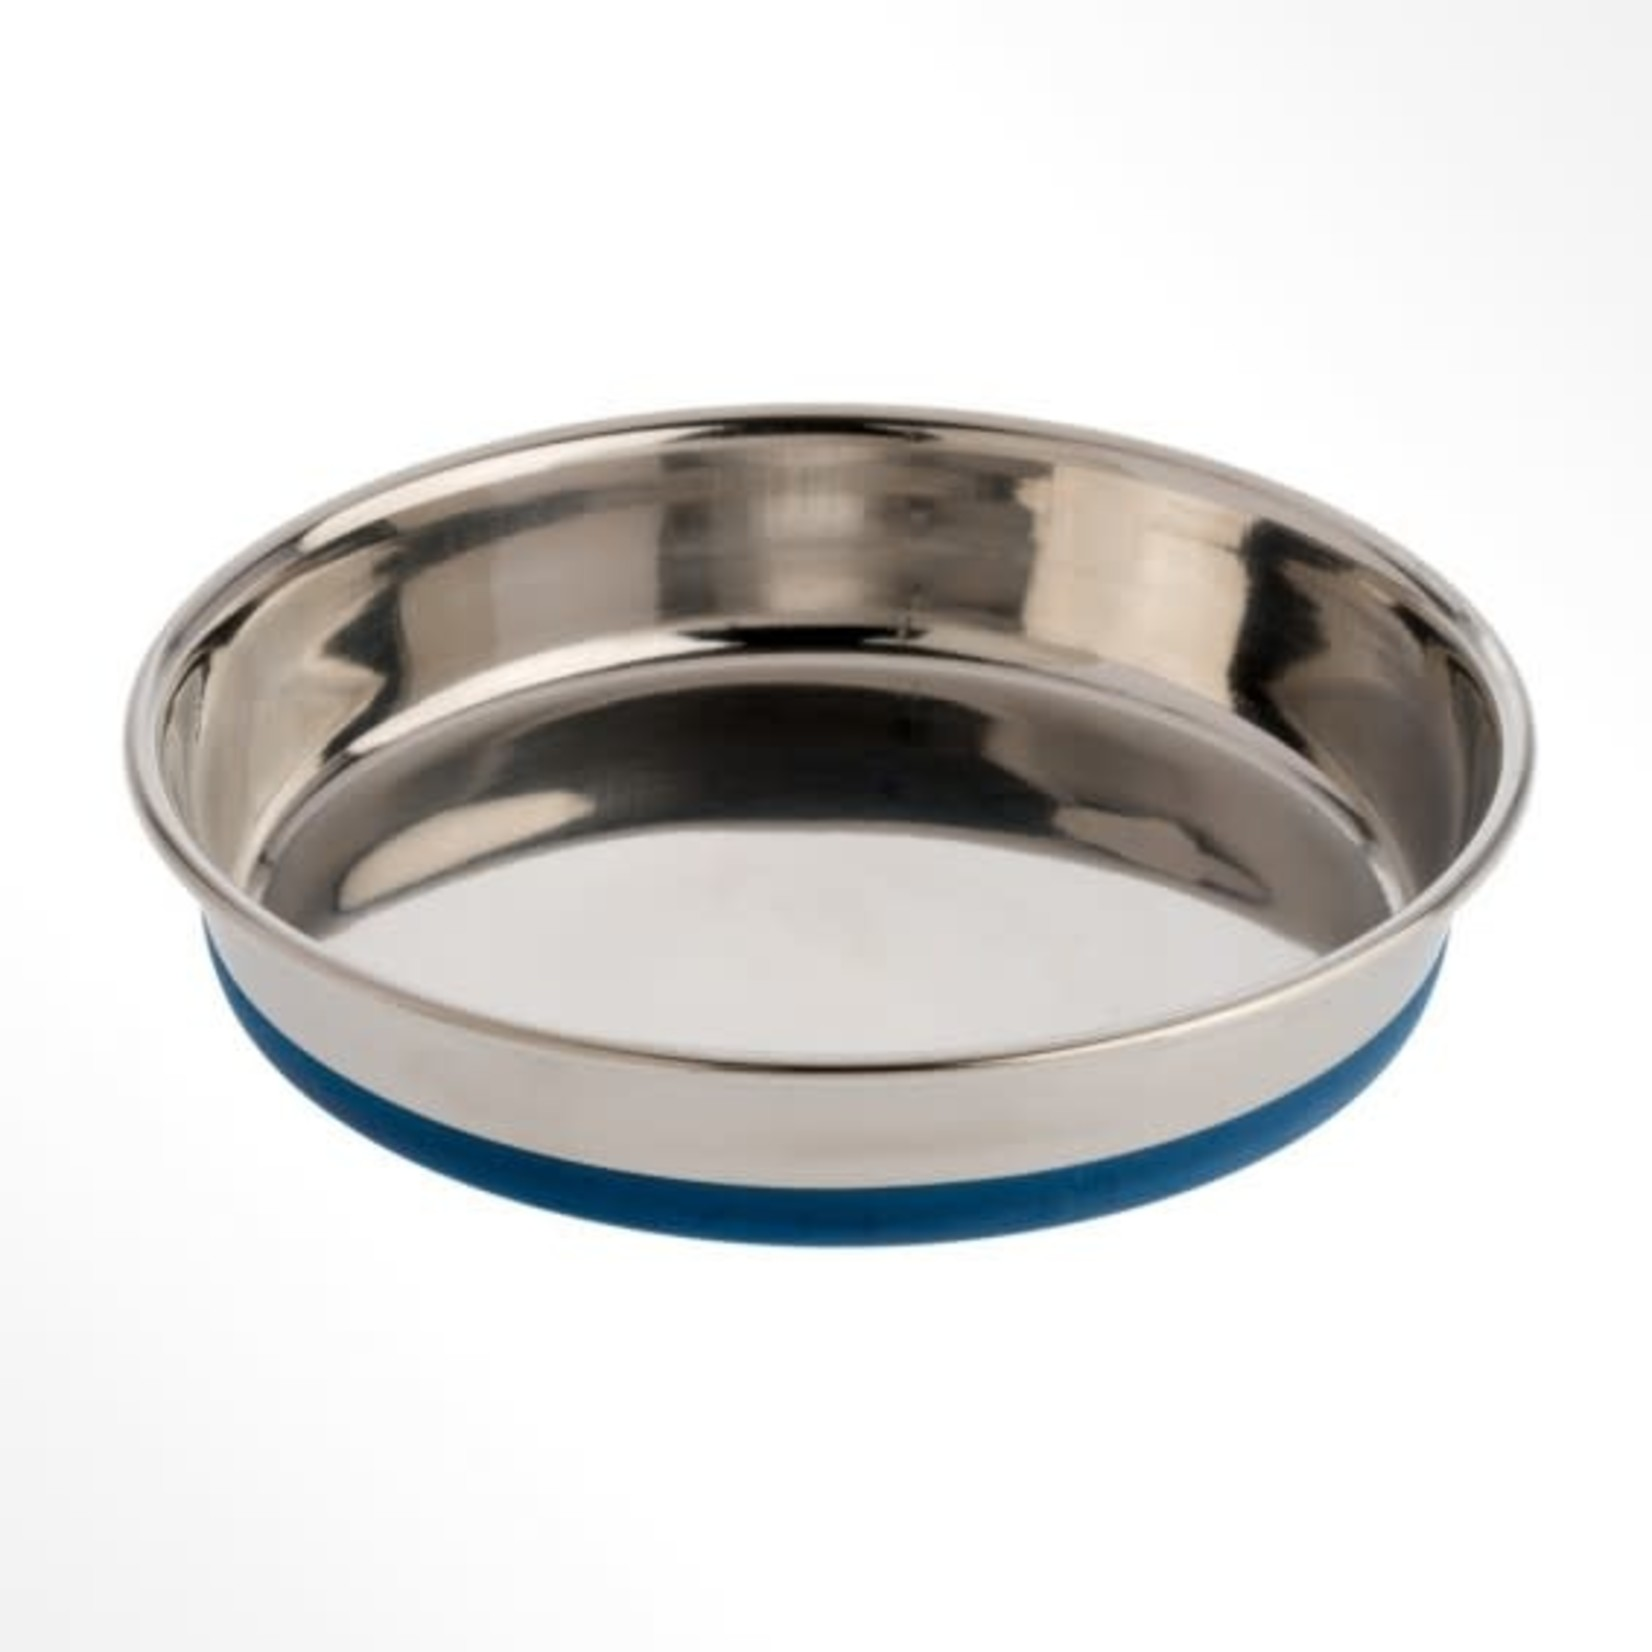 Our Pets Company Durapet Stainless Steel Bowl Cat Dish 8 OZ